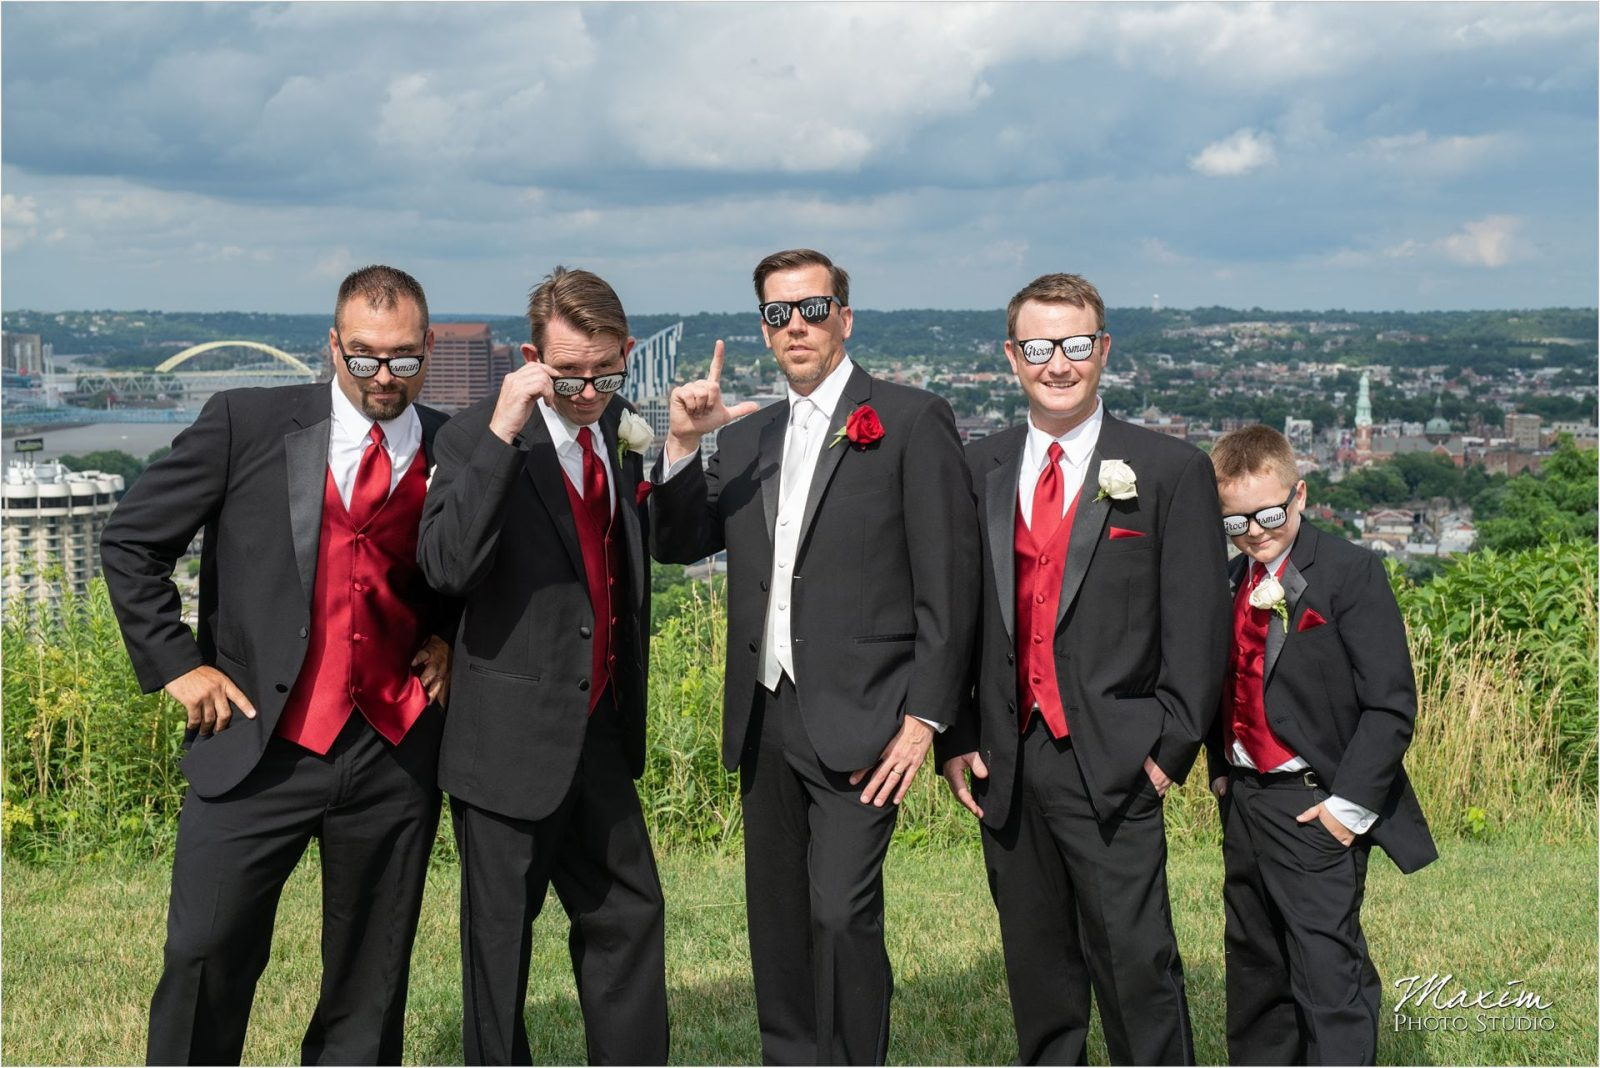 Devou Park Cincinnati downtown overlook Groomsmen